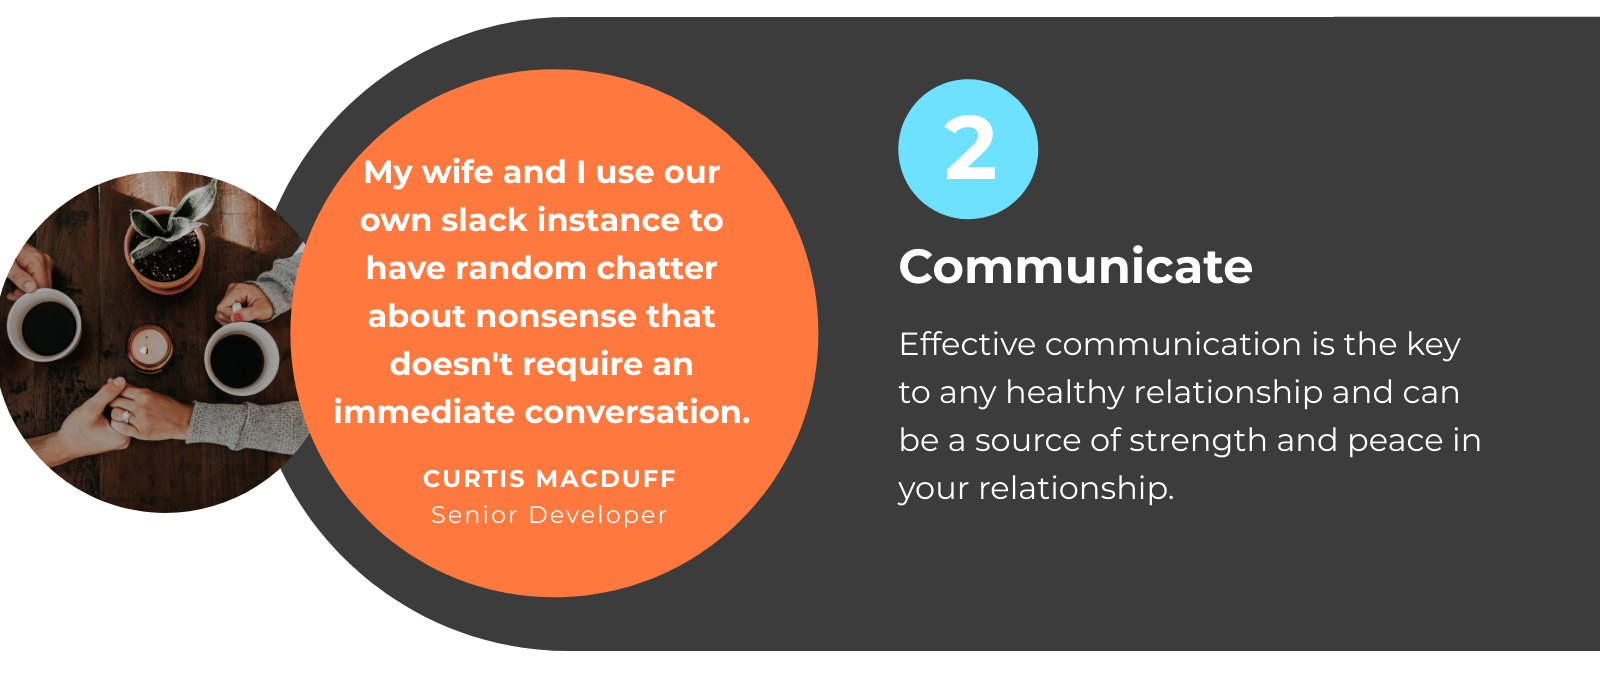 WFH with Partner Tip 2: Communicate